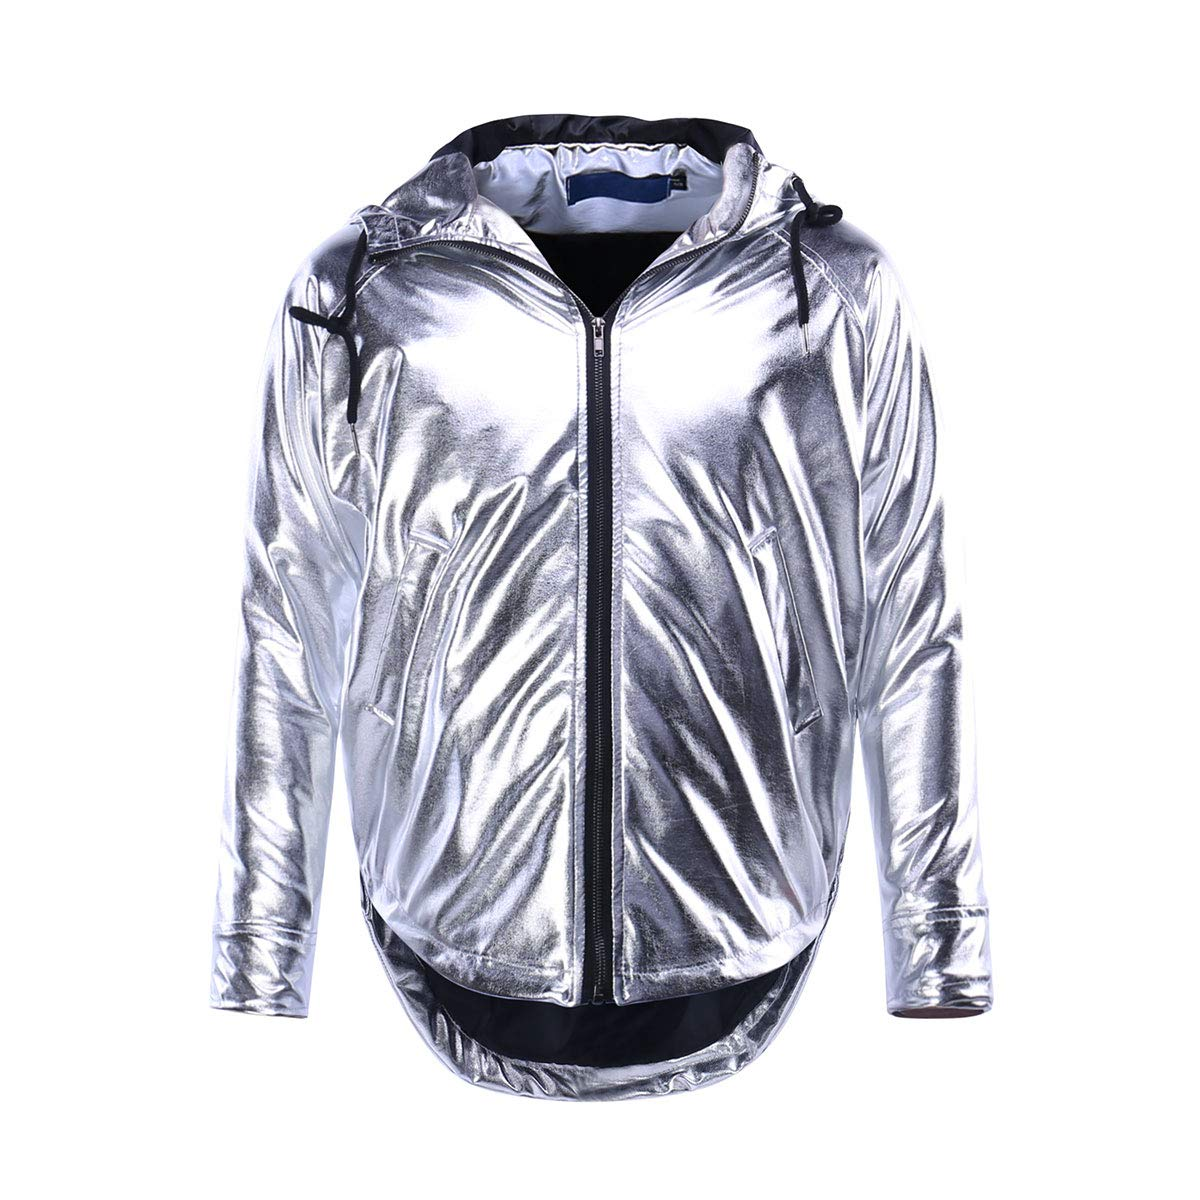 Men's Shiny Zipper Jacket Hooded Gold Hip Hop Nightclub Varsity Baseball Bomber Jackets by Keepline